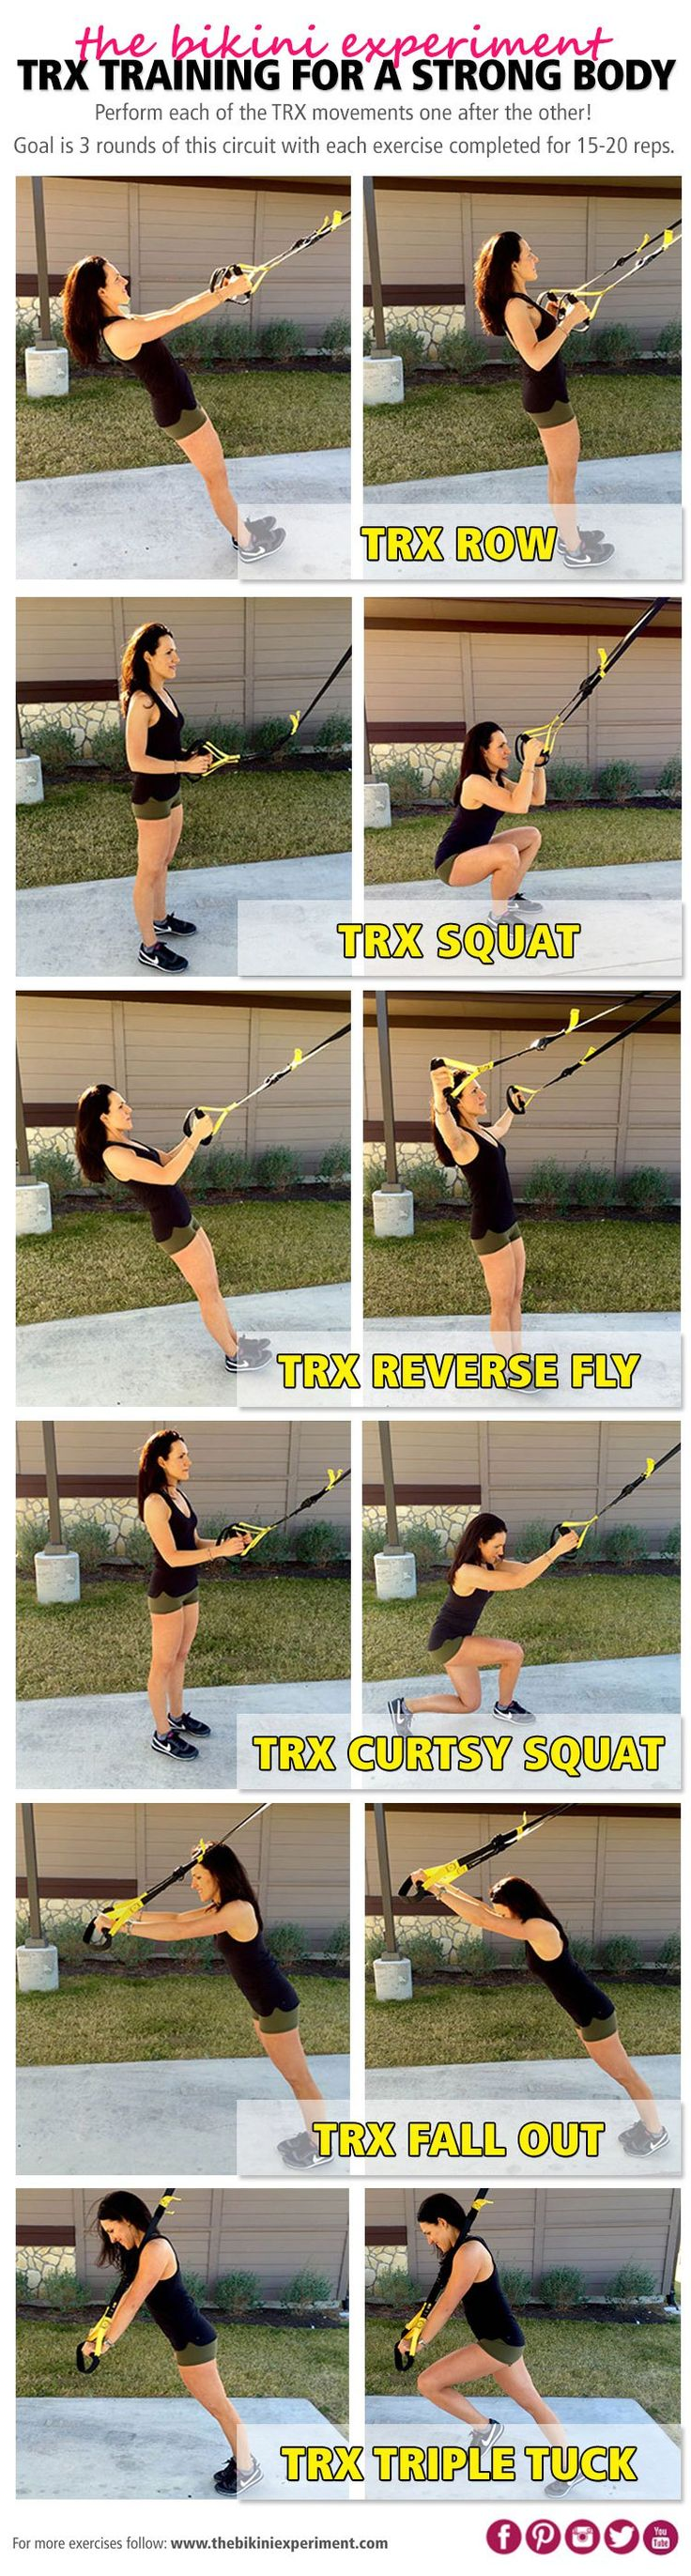 TRX training to build muscle and get strong! This full body workout is perfect for developing a lean and athletic body. Just set up your TRX and we are off!